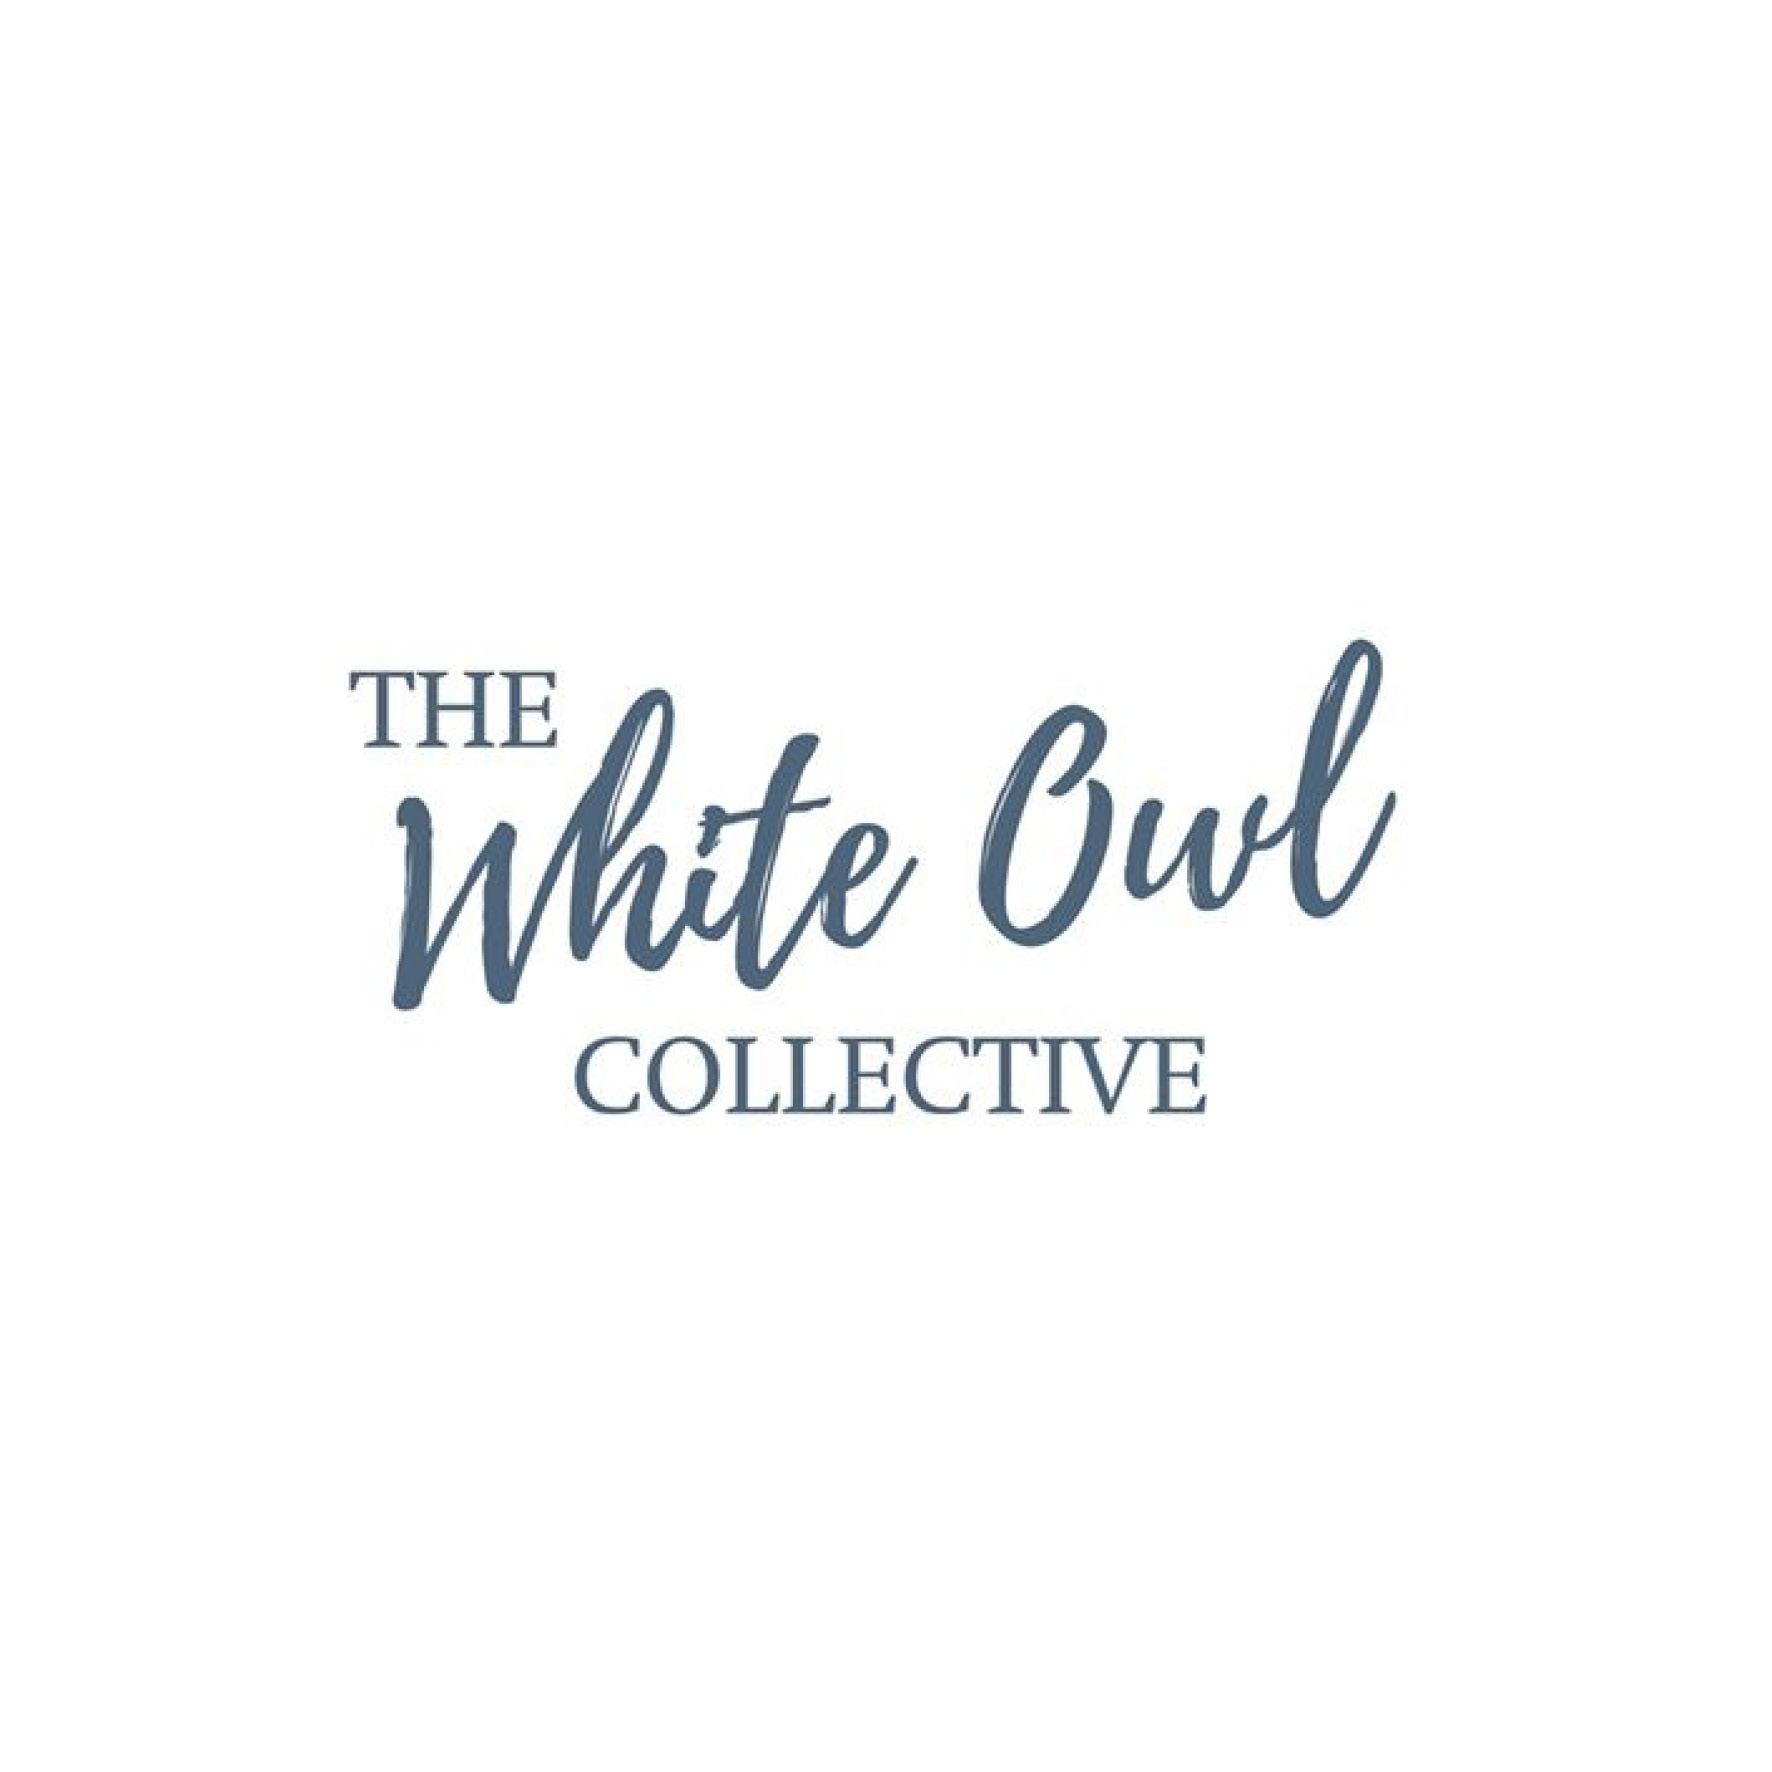 Exhibitor Logo - White Owl Collective.jpg